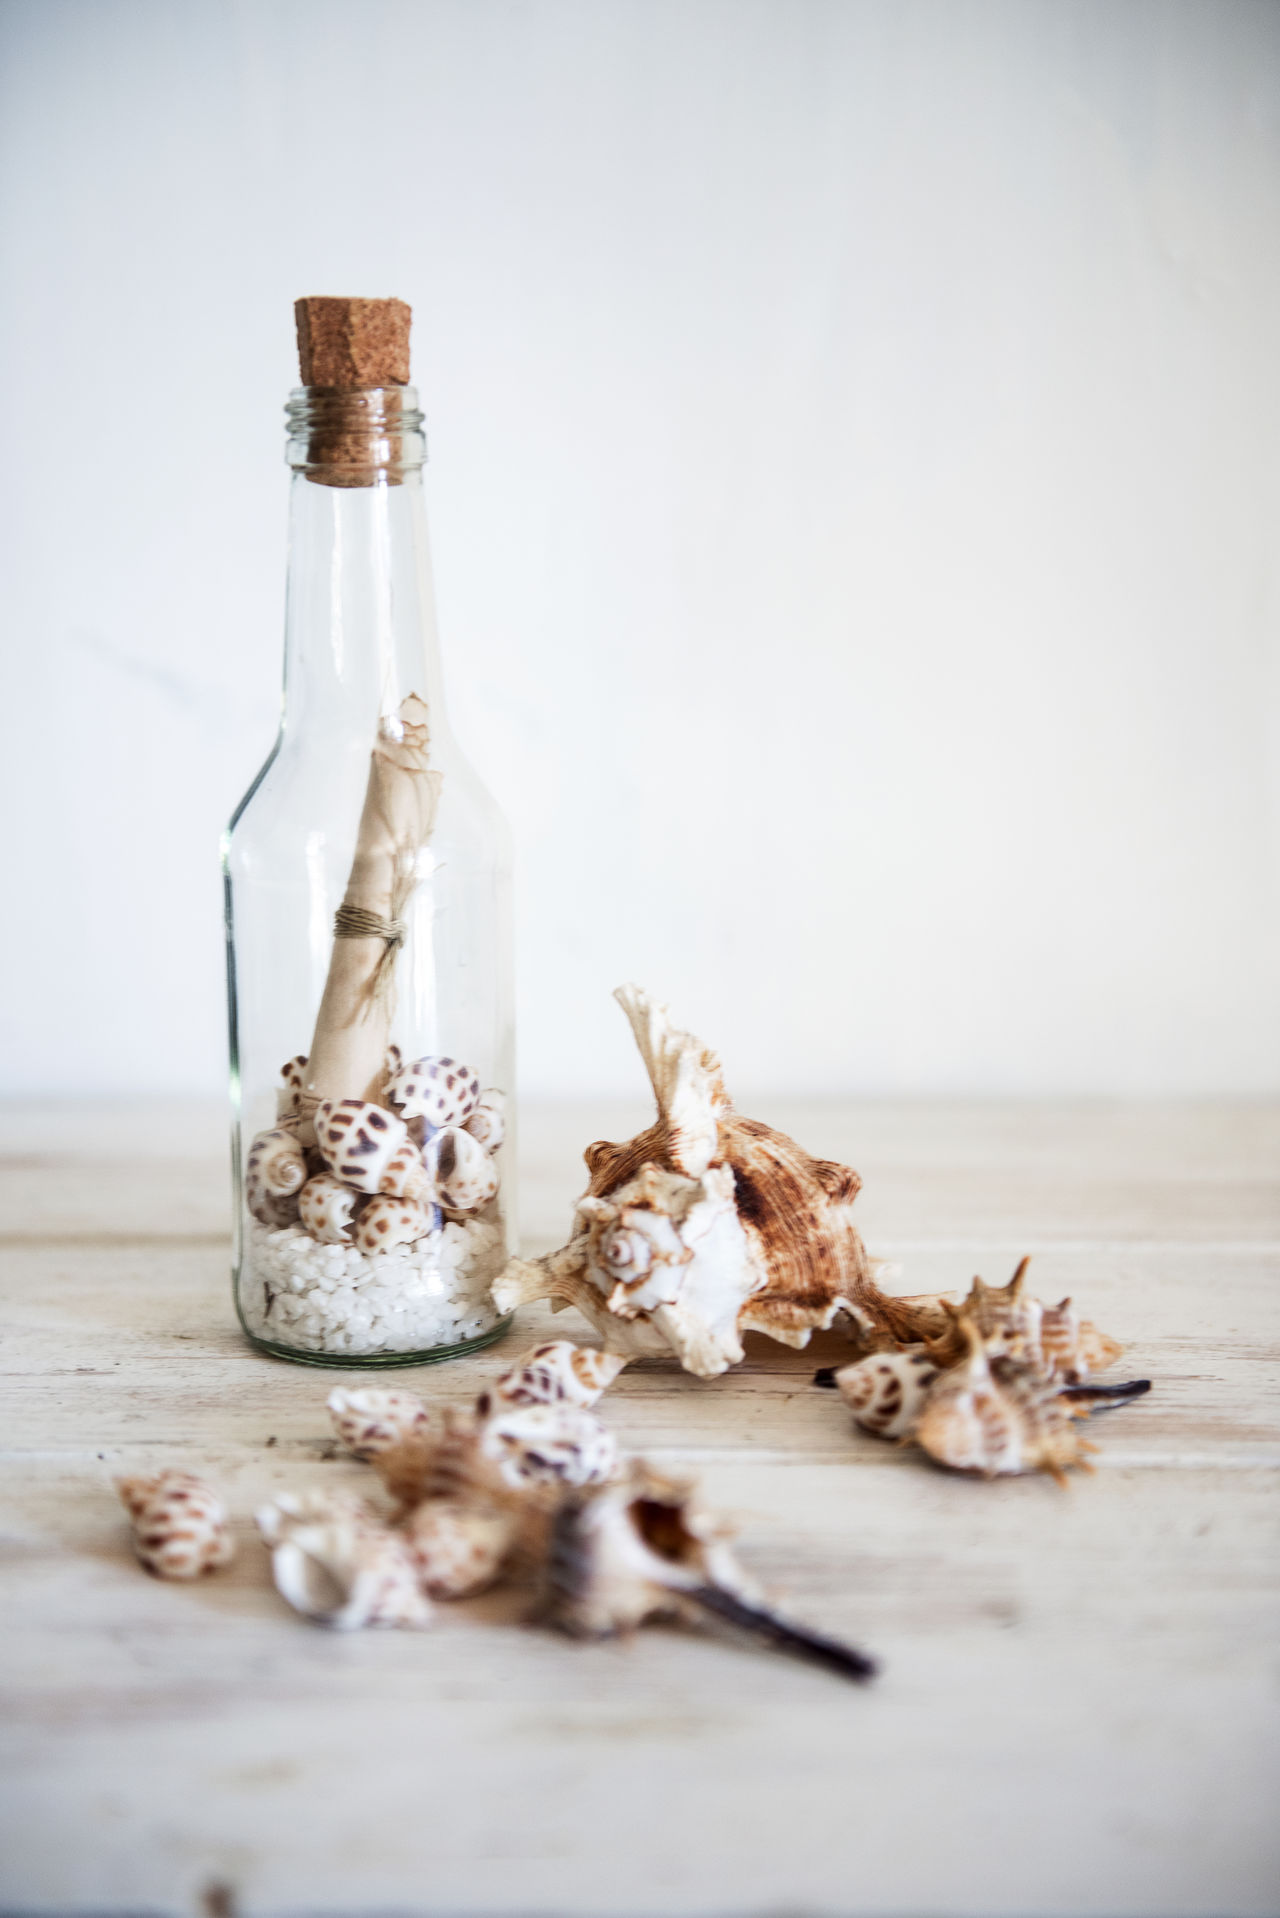 Message In A Bottle Bottle Message In A Bottle Shells Still Life Still Life Photography Summer Table White White Color Wood